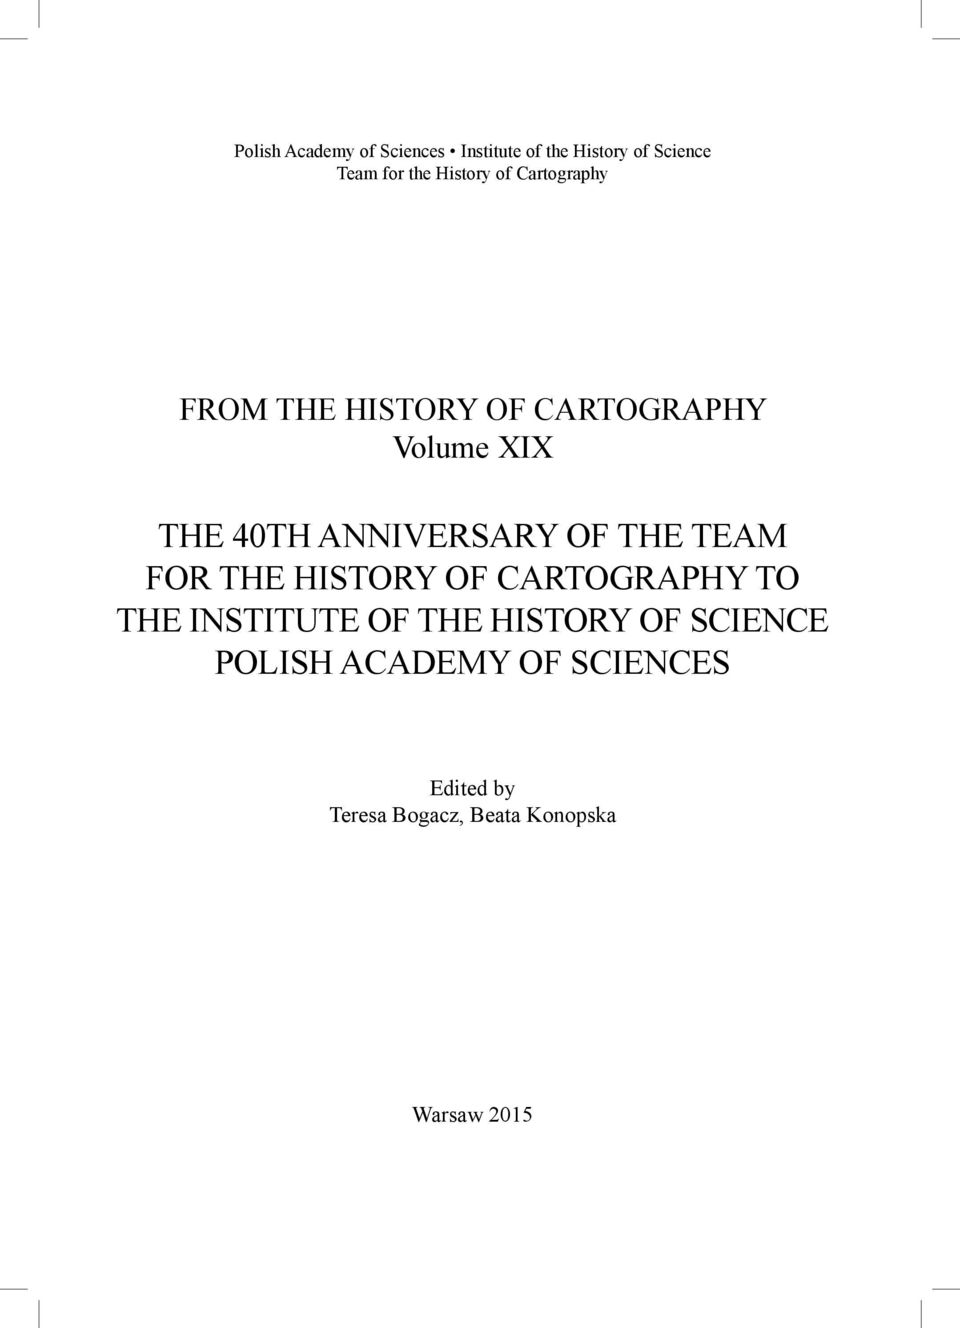 40TH ANNIVERSARY OF THE TEAM FOR THE HISTORY OF CARTOGRAPHY TO THE